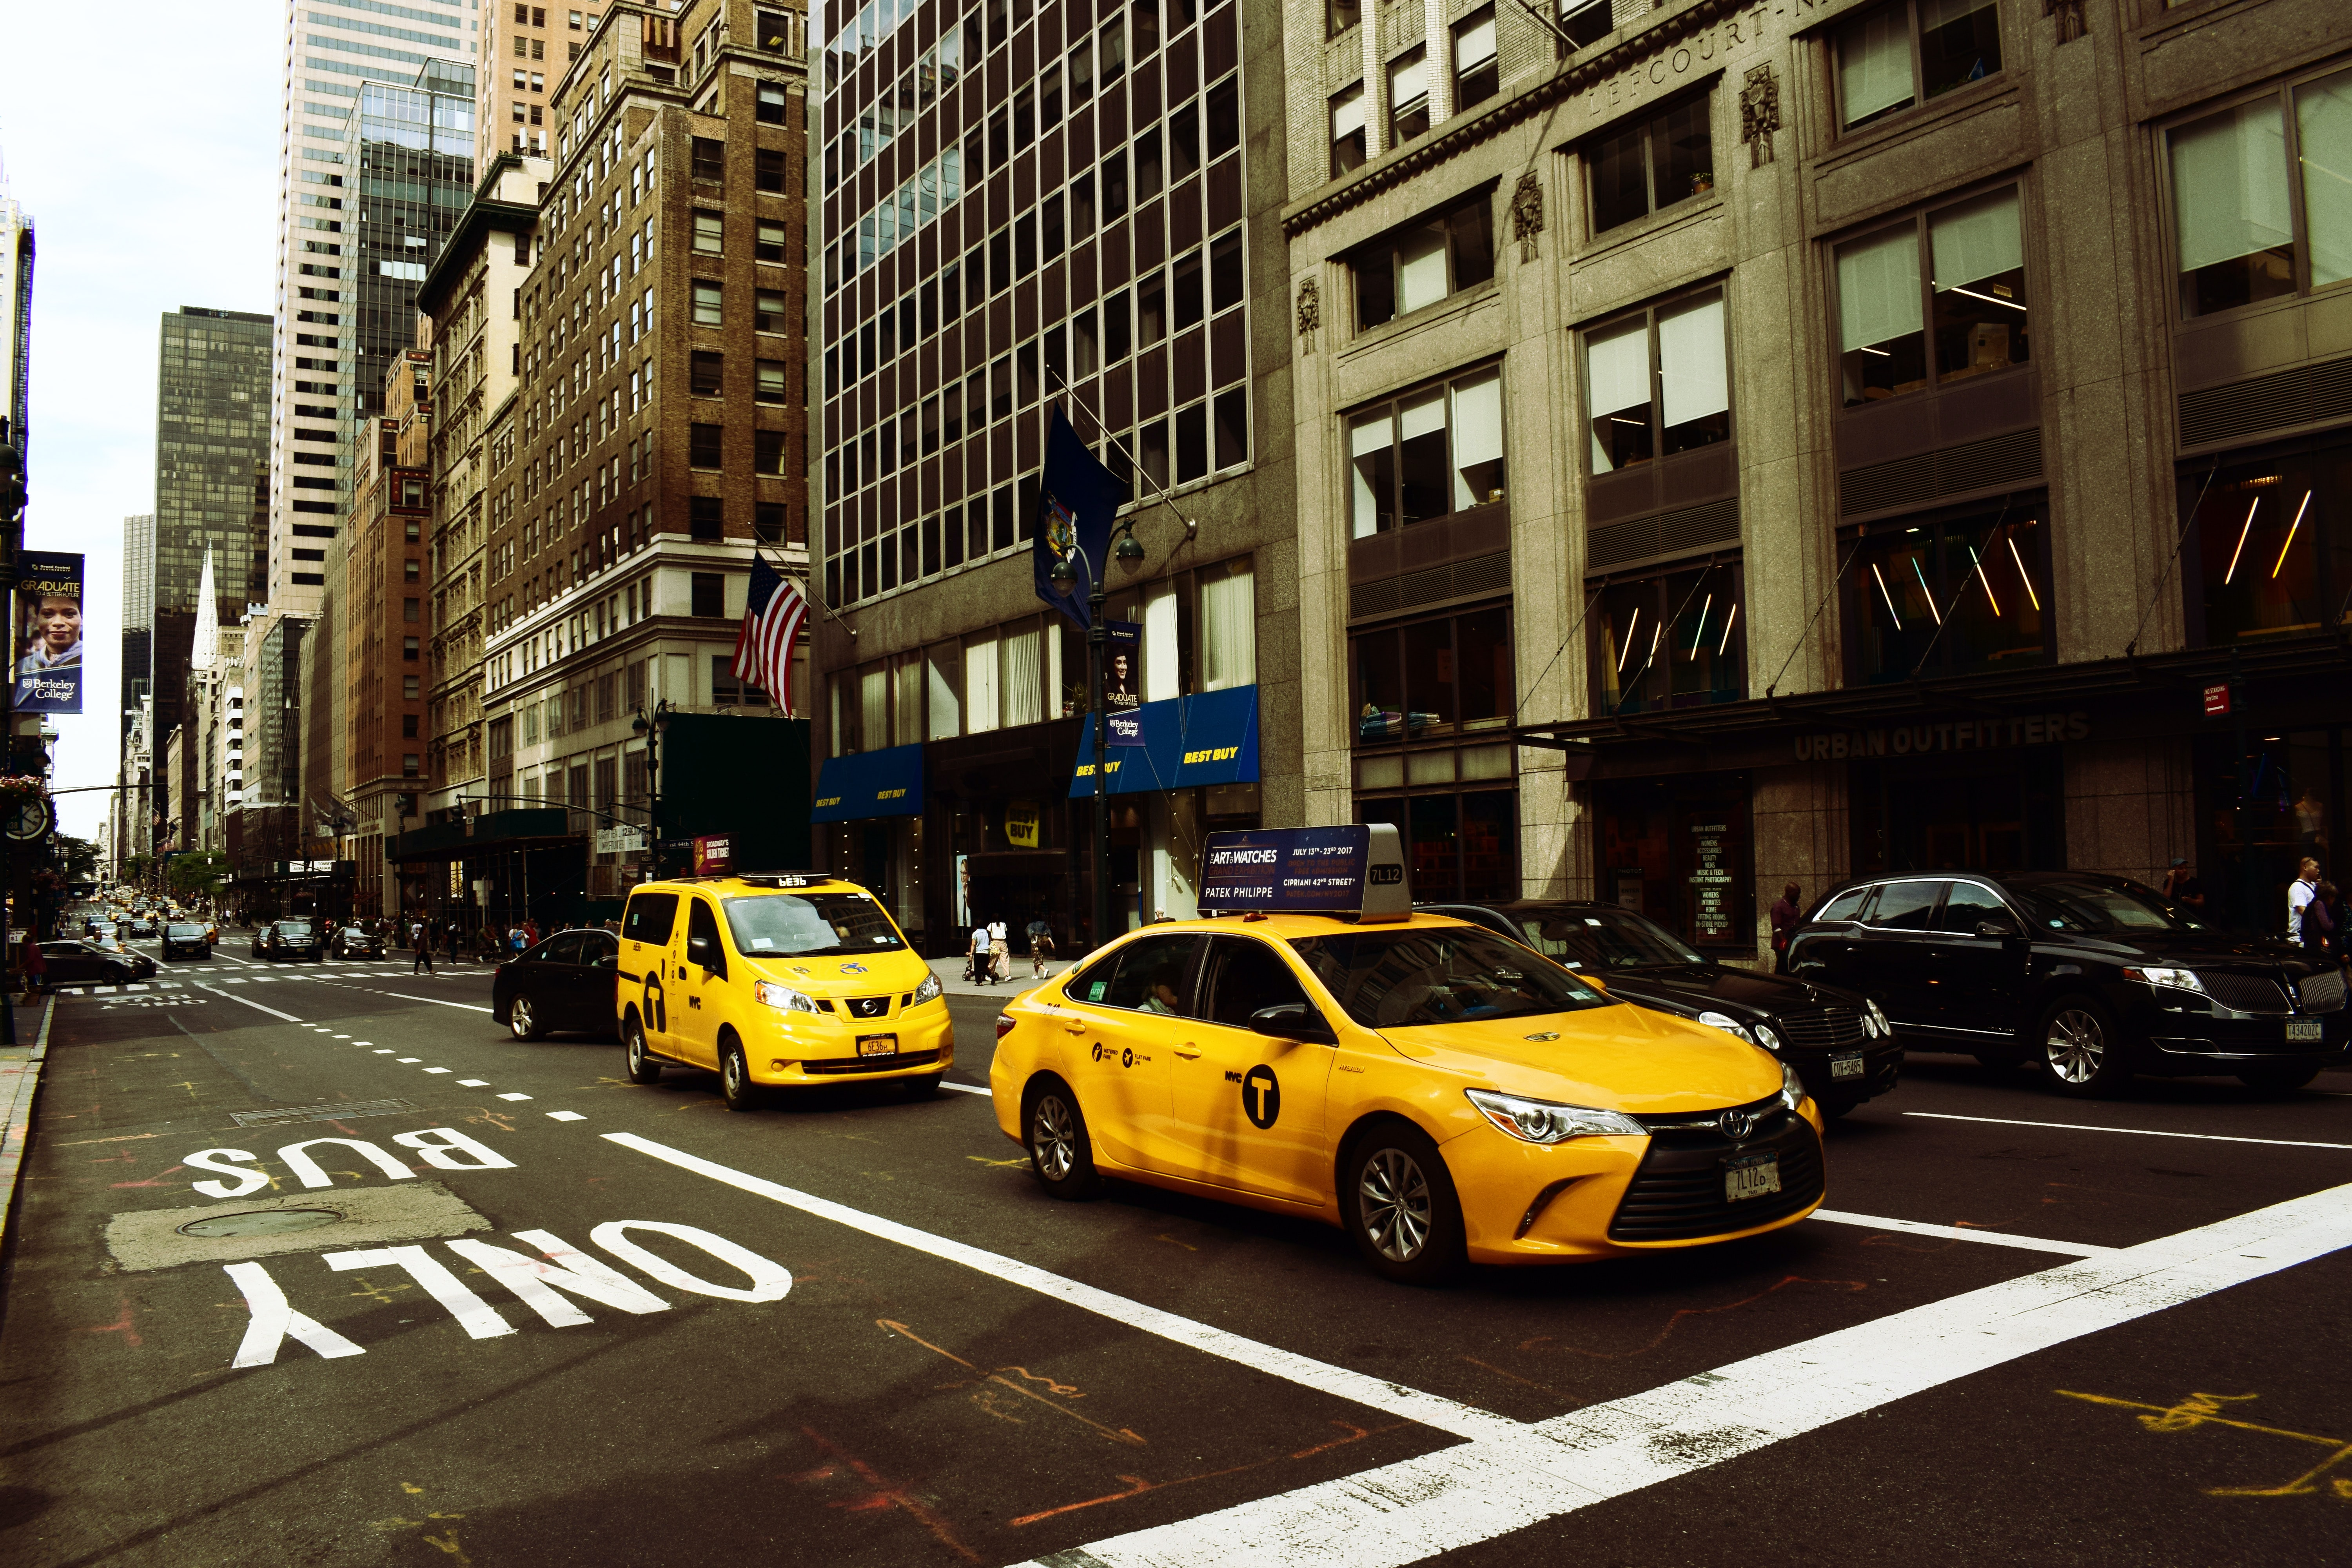 two yellow taxis on middle of road